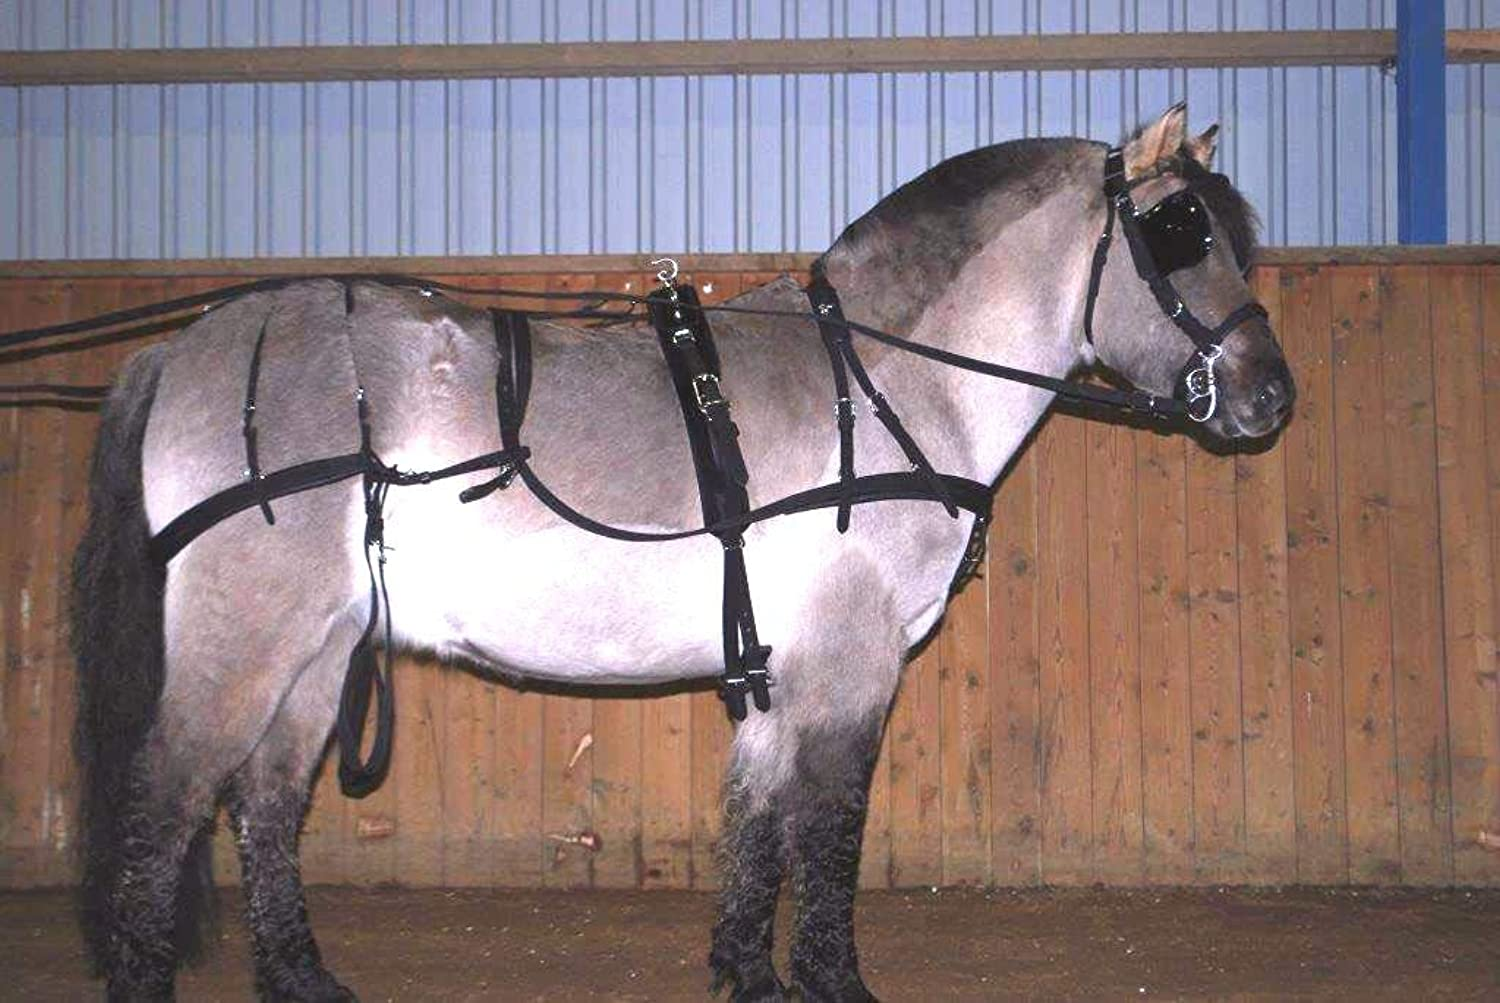 Cwell Equine Strong NYLON HORSE DRIVING CART HARNESS WITH SADDLE BRIDLE etc  D F C P S M black